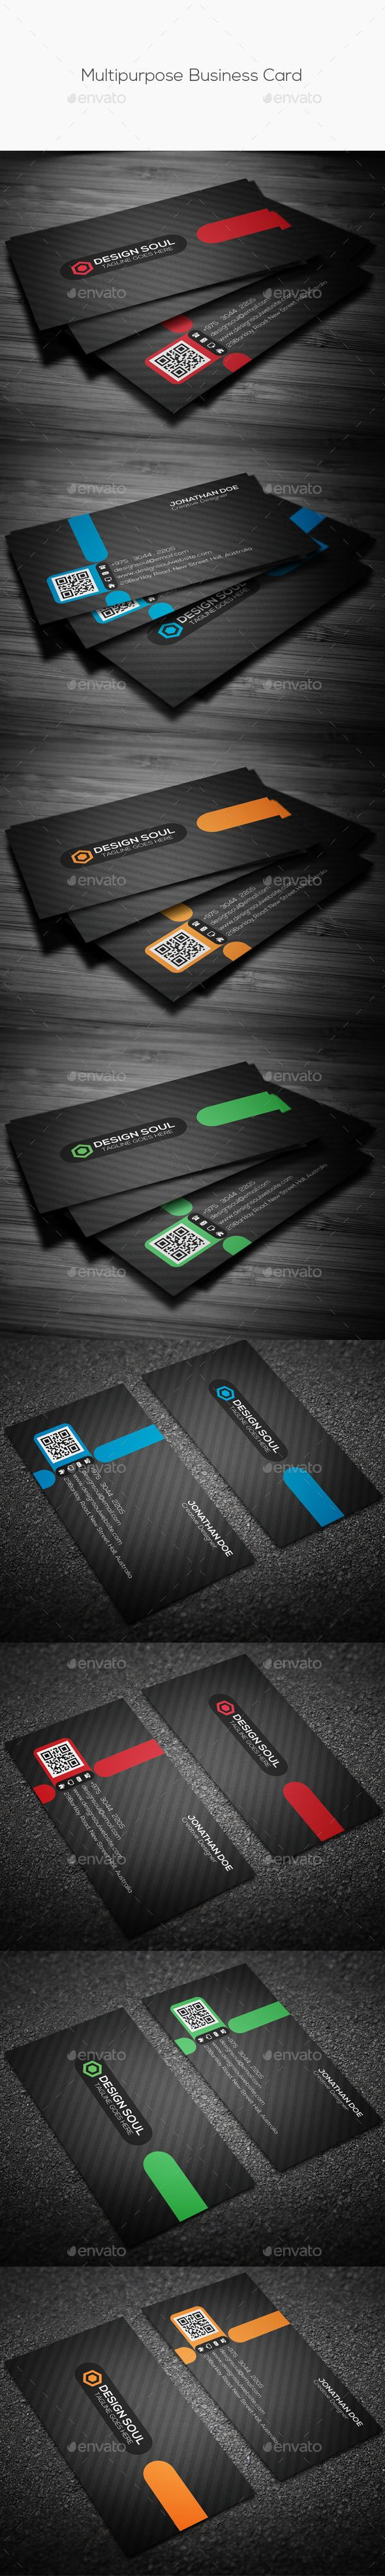 22 best business card ideas images on pinterest